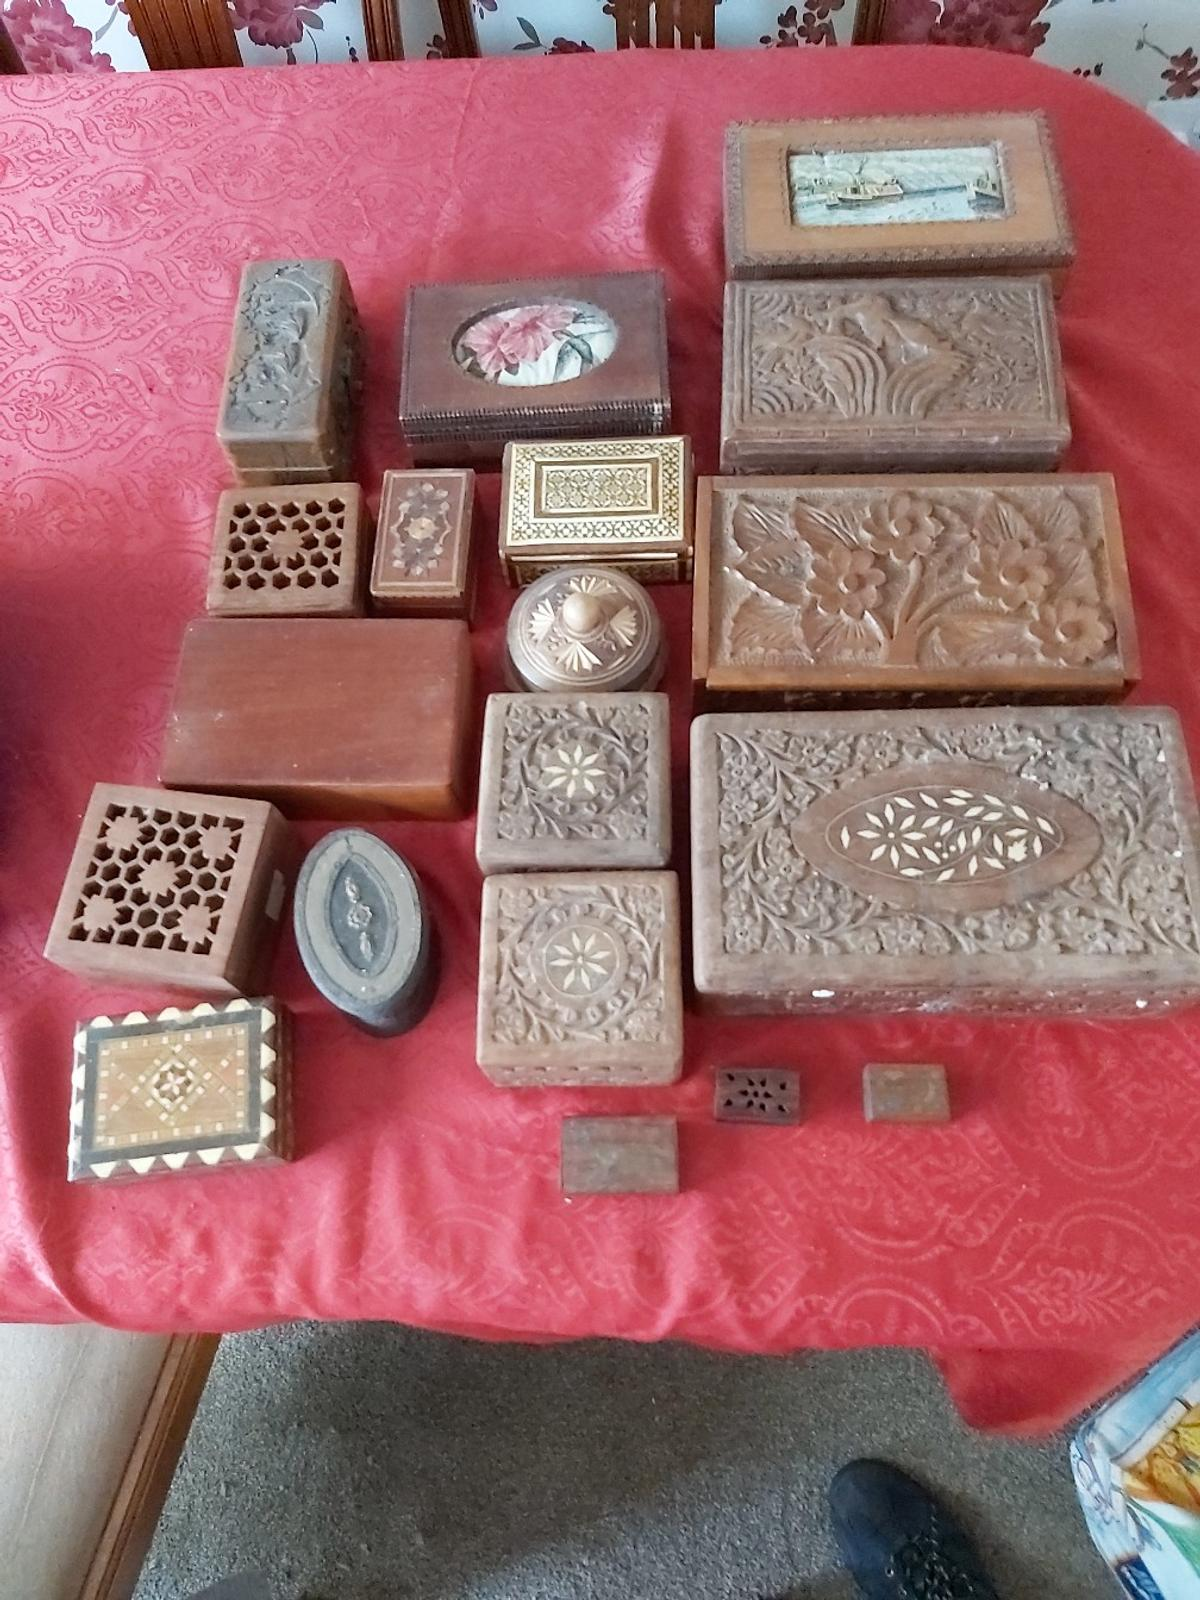 Selection of old carved wood or inlaid boxes